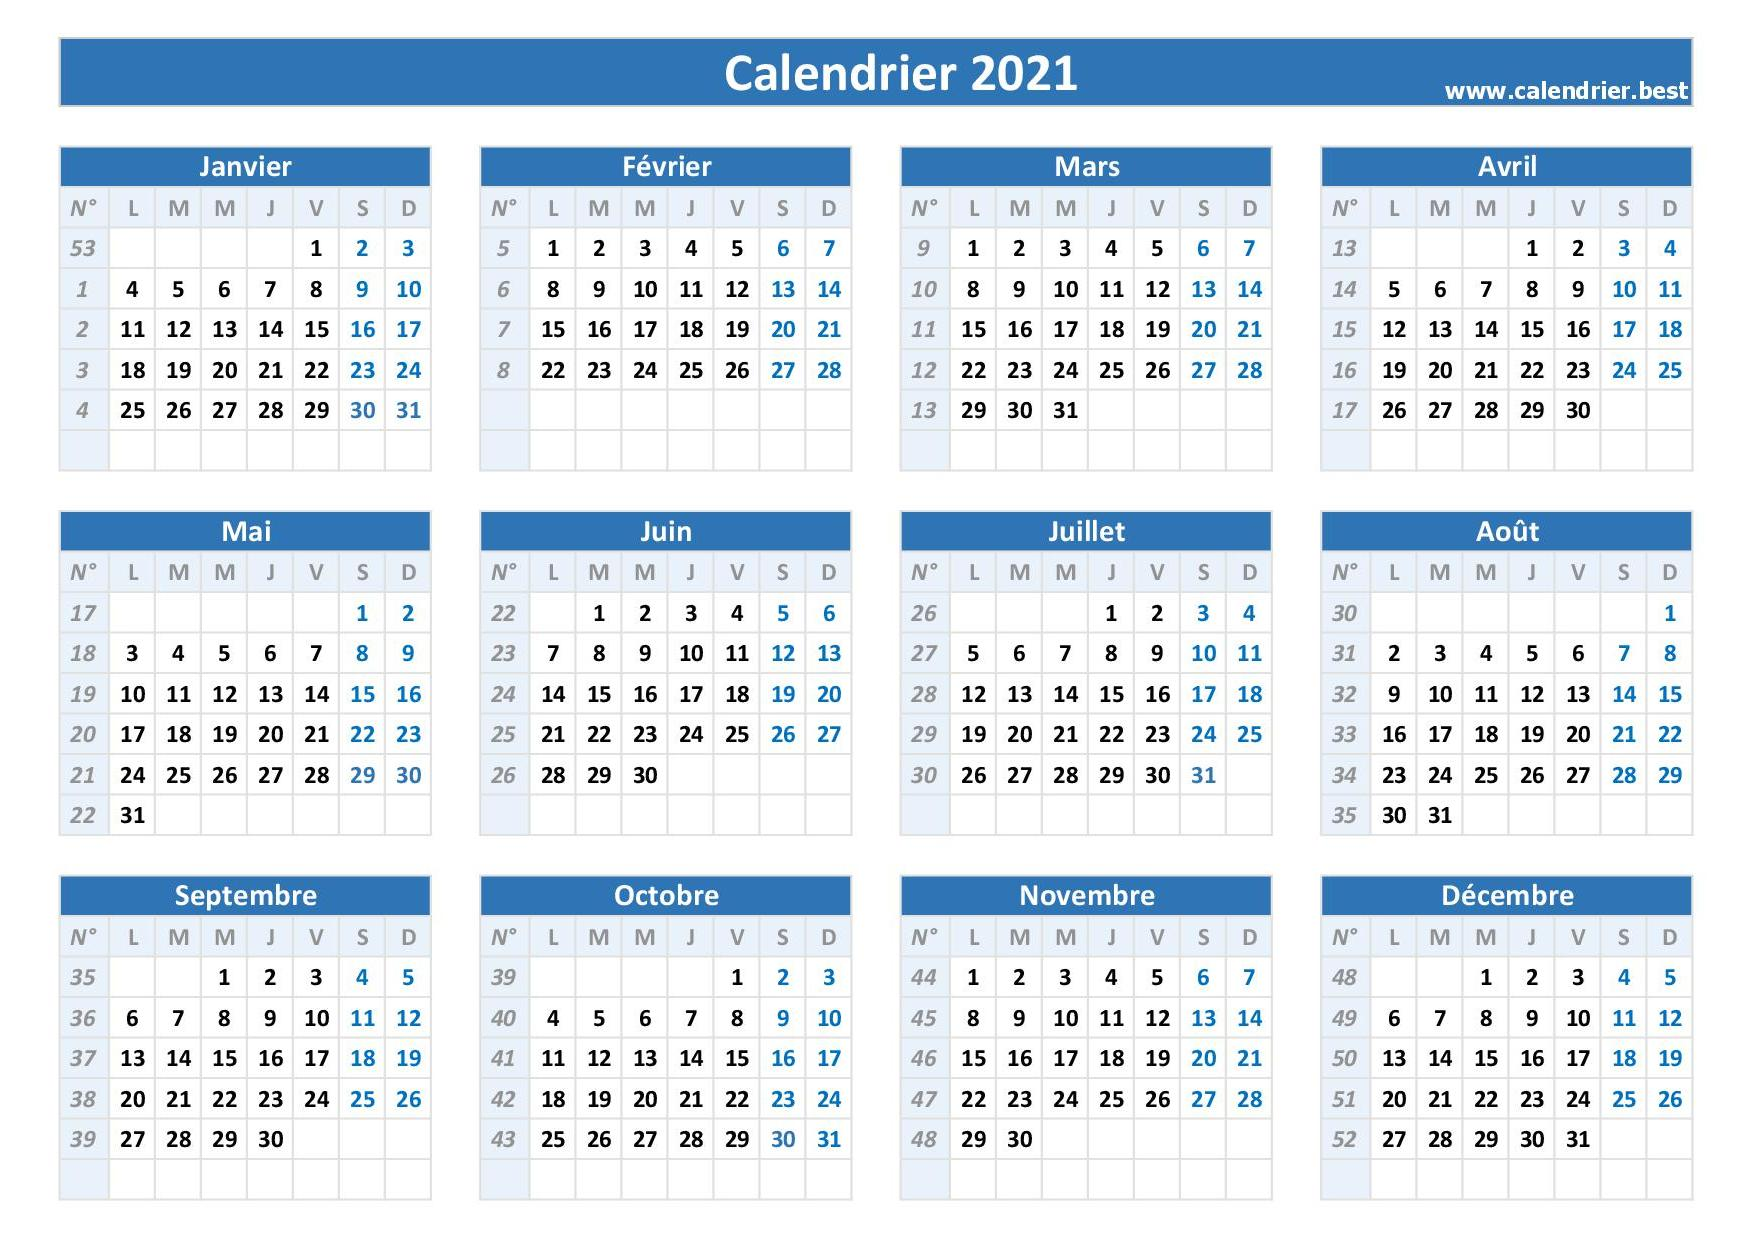 Semaine 1 2021 : dates, calendrier et planning  Calendrier.best